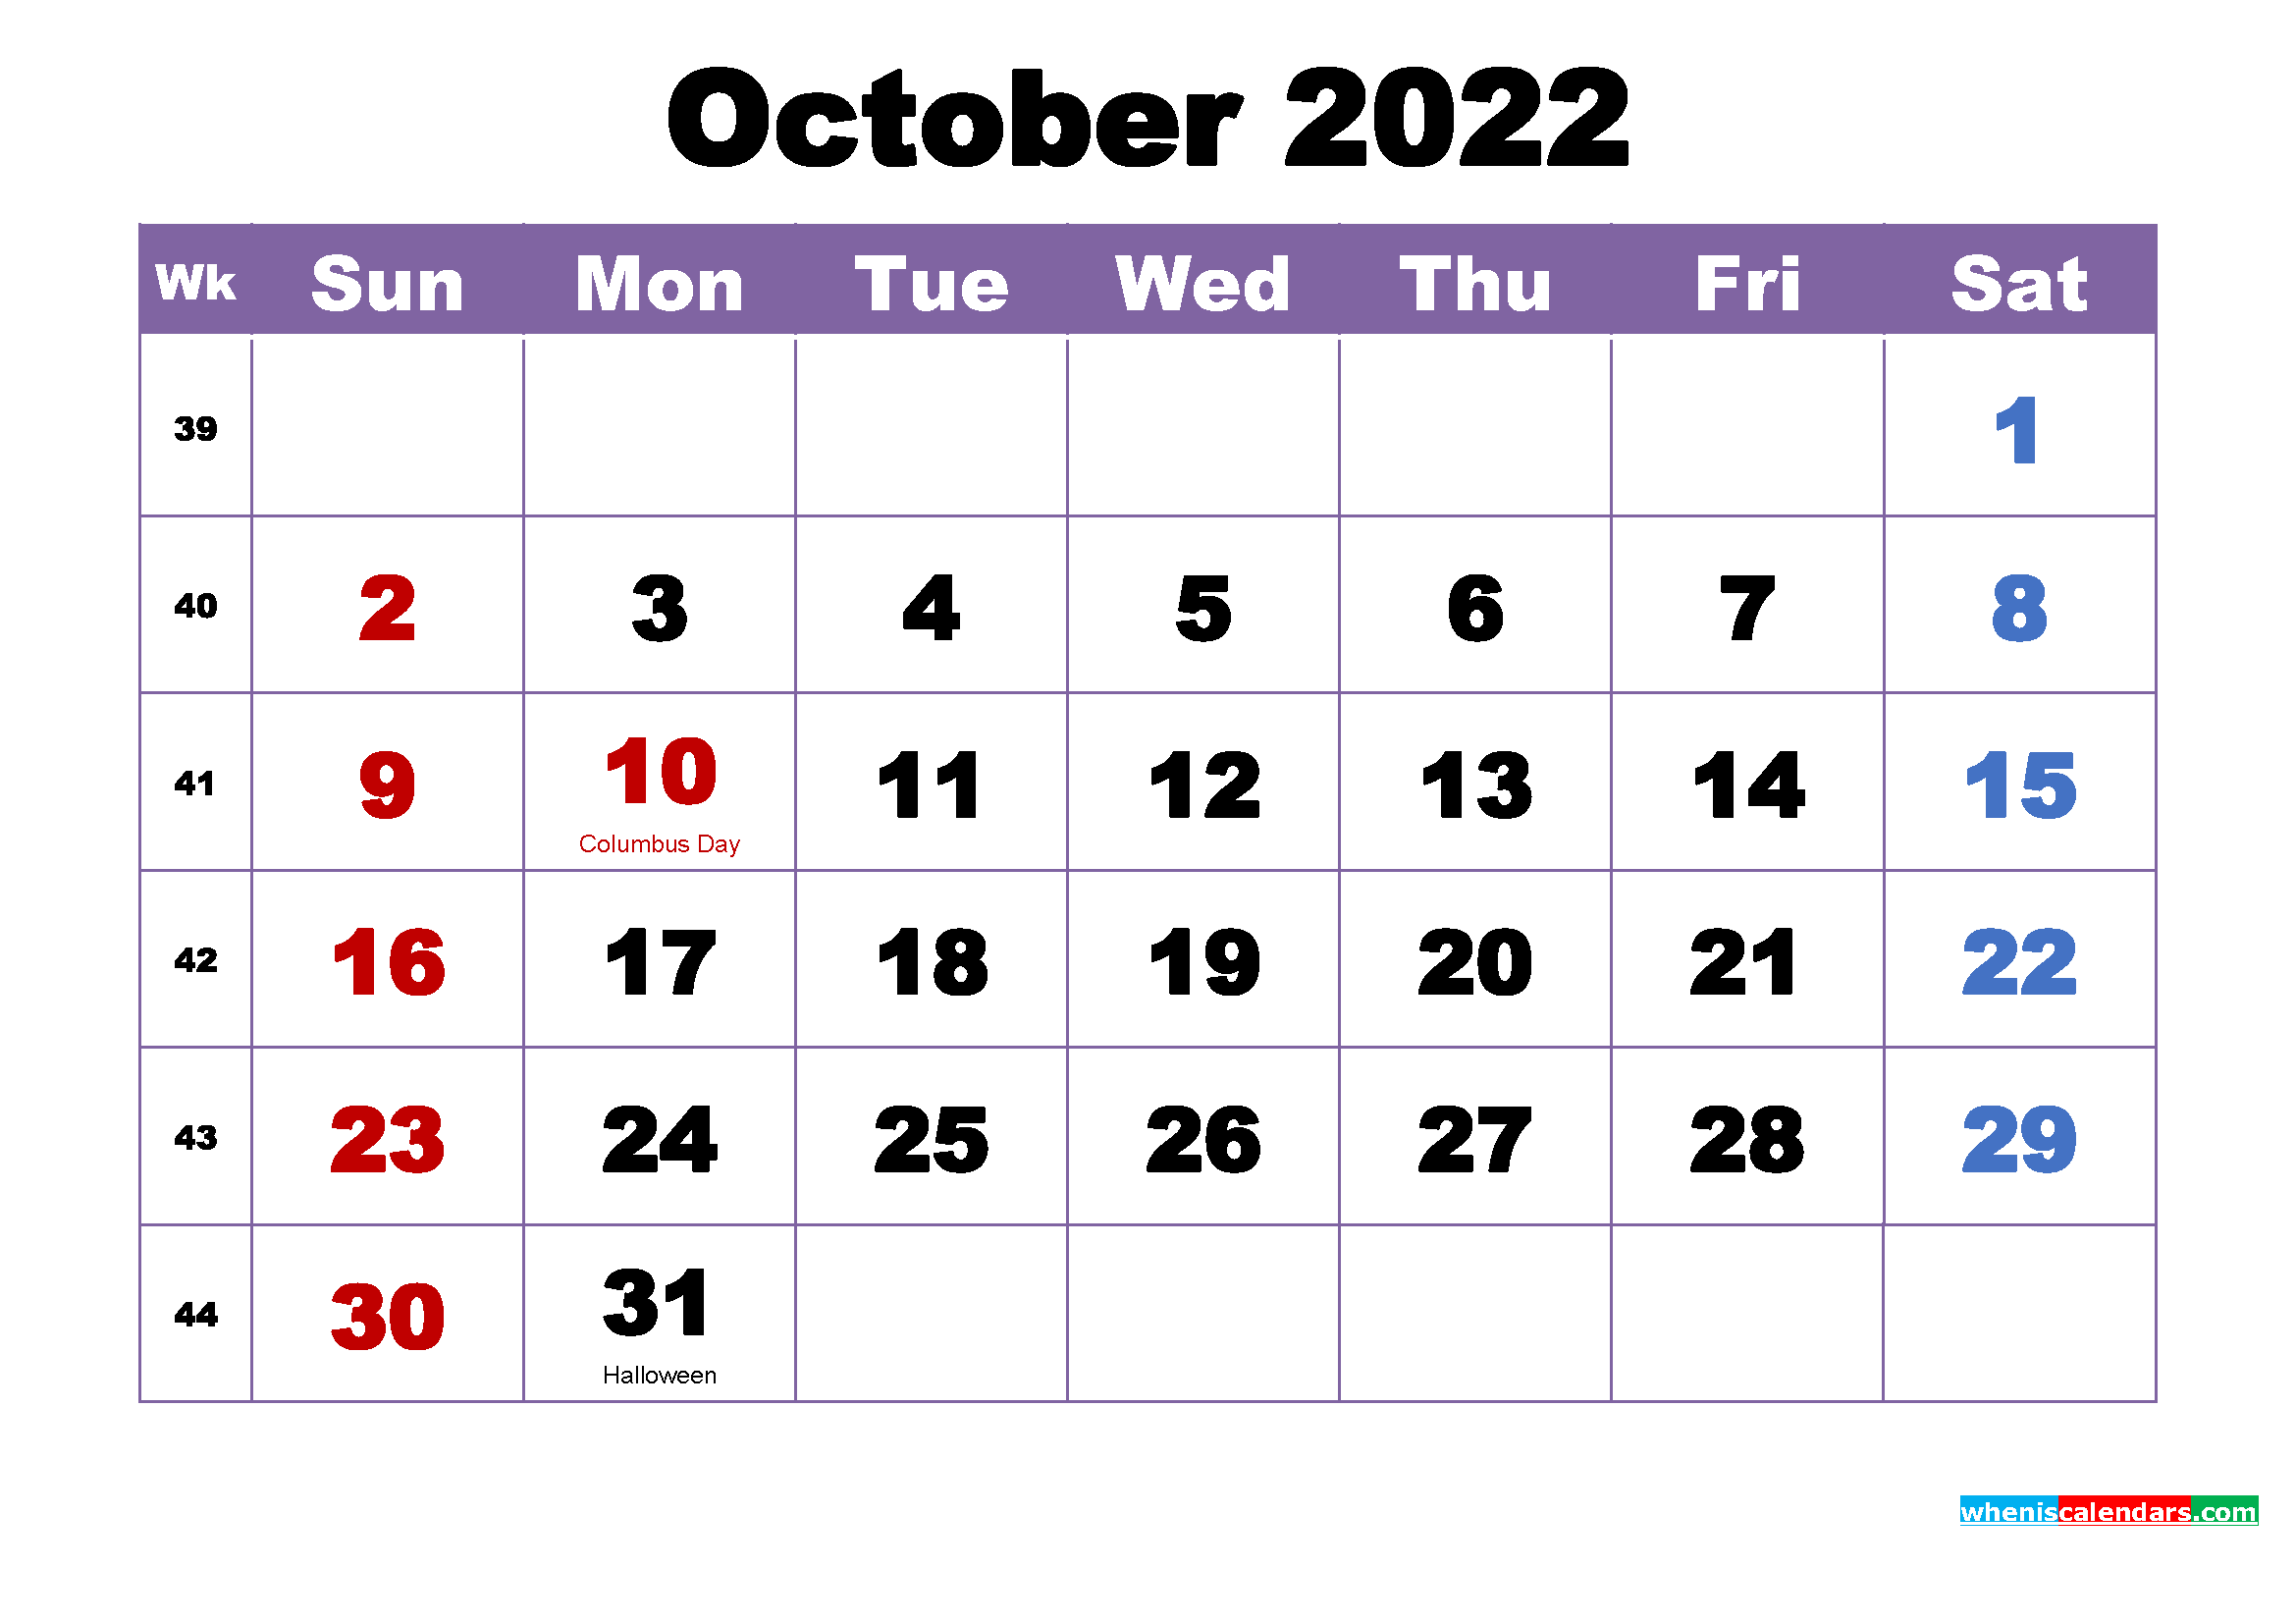 October 2022 Calendar with Holidays Printable